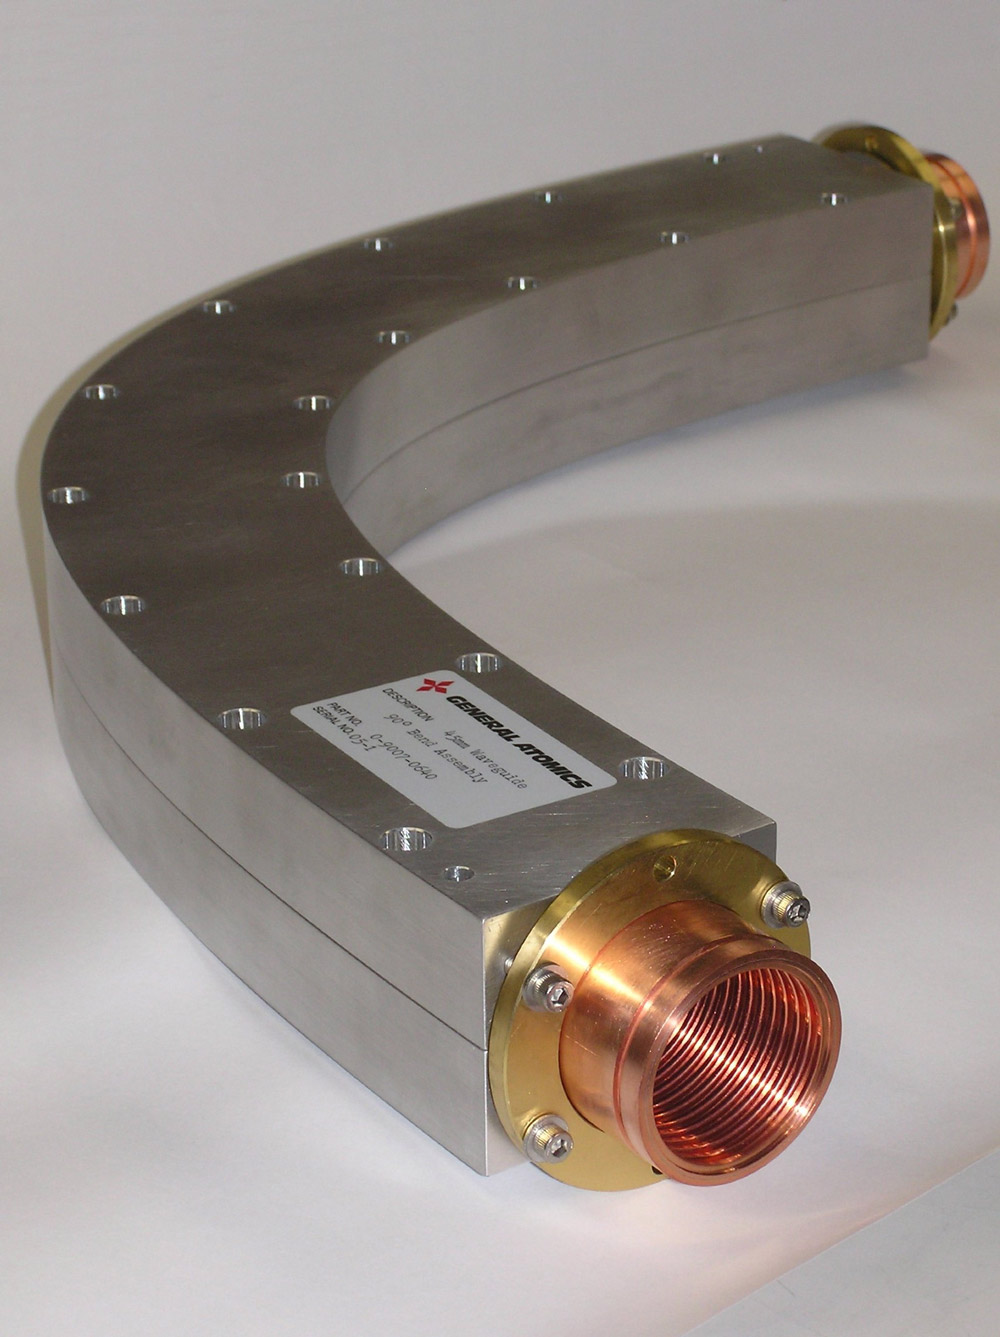 High power 90° continuous curvature bend